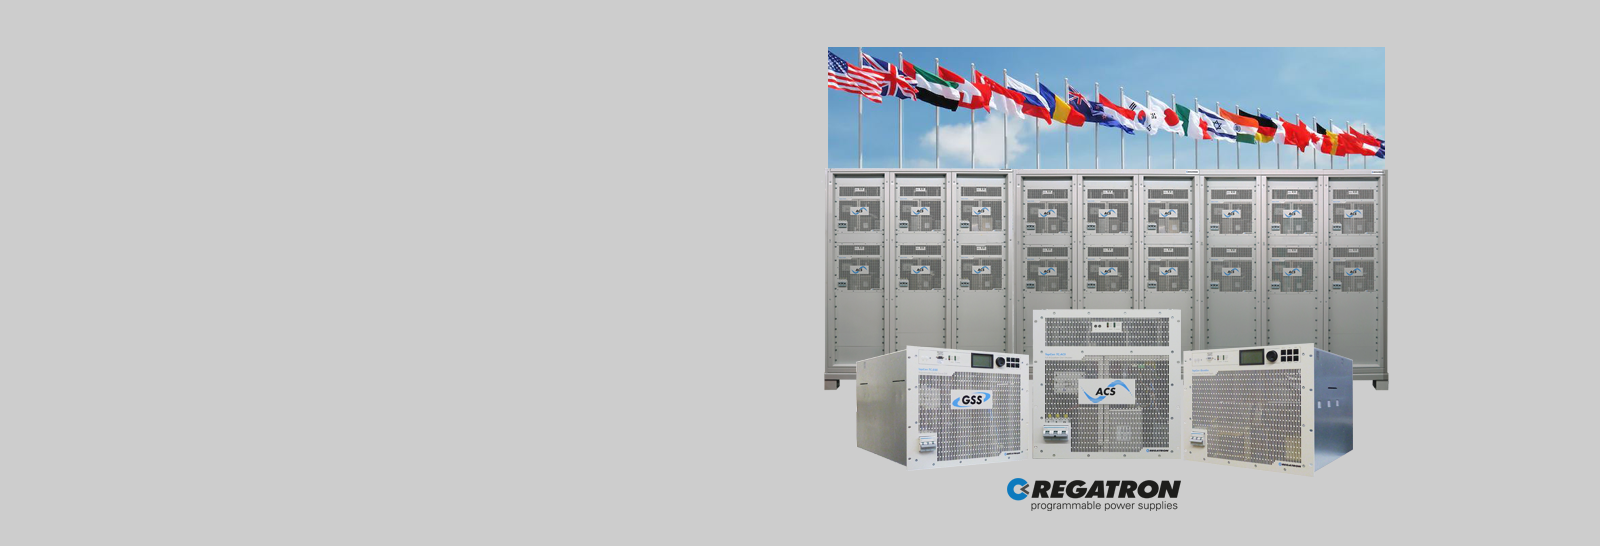 Welcome To The World Of Programmable Power Supplies From Regatron Supply Support Material Provides A Complete Circuit Description Wide Distribution And Customer Service